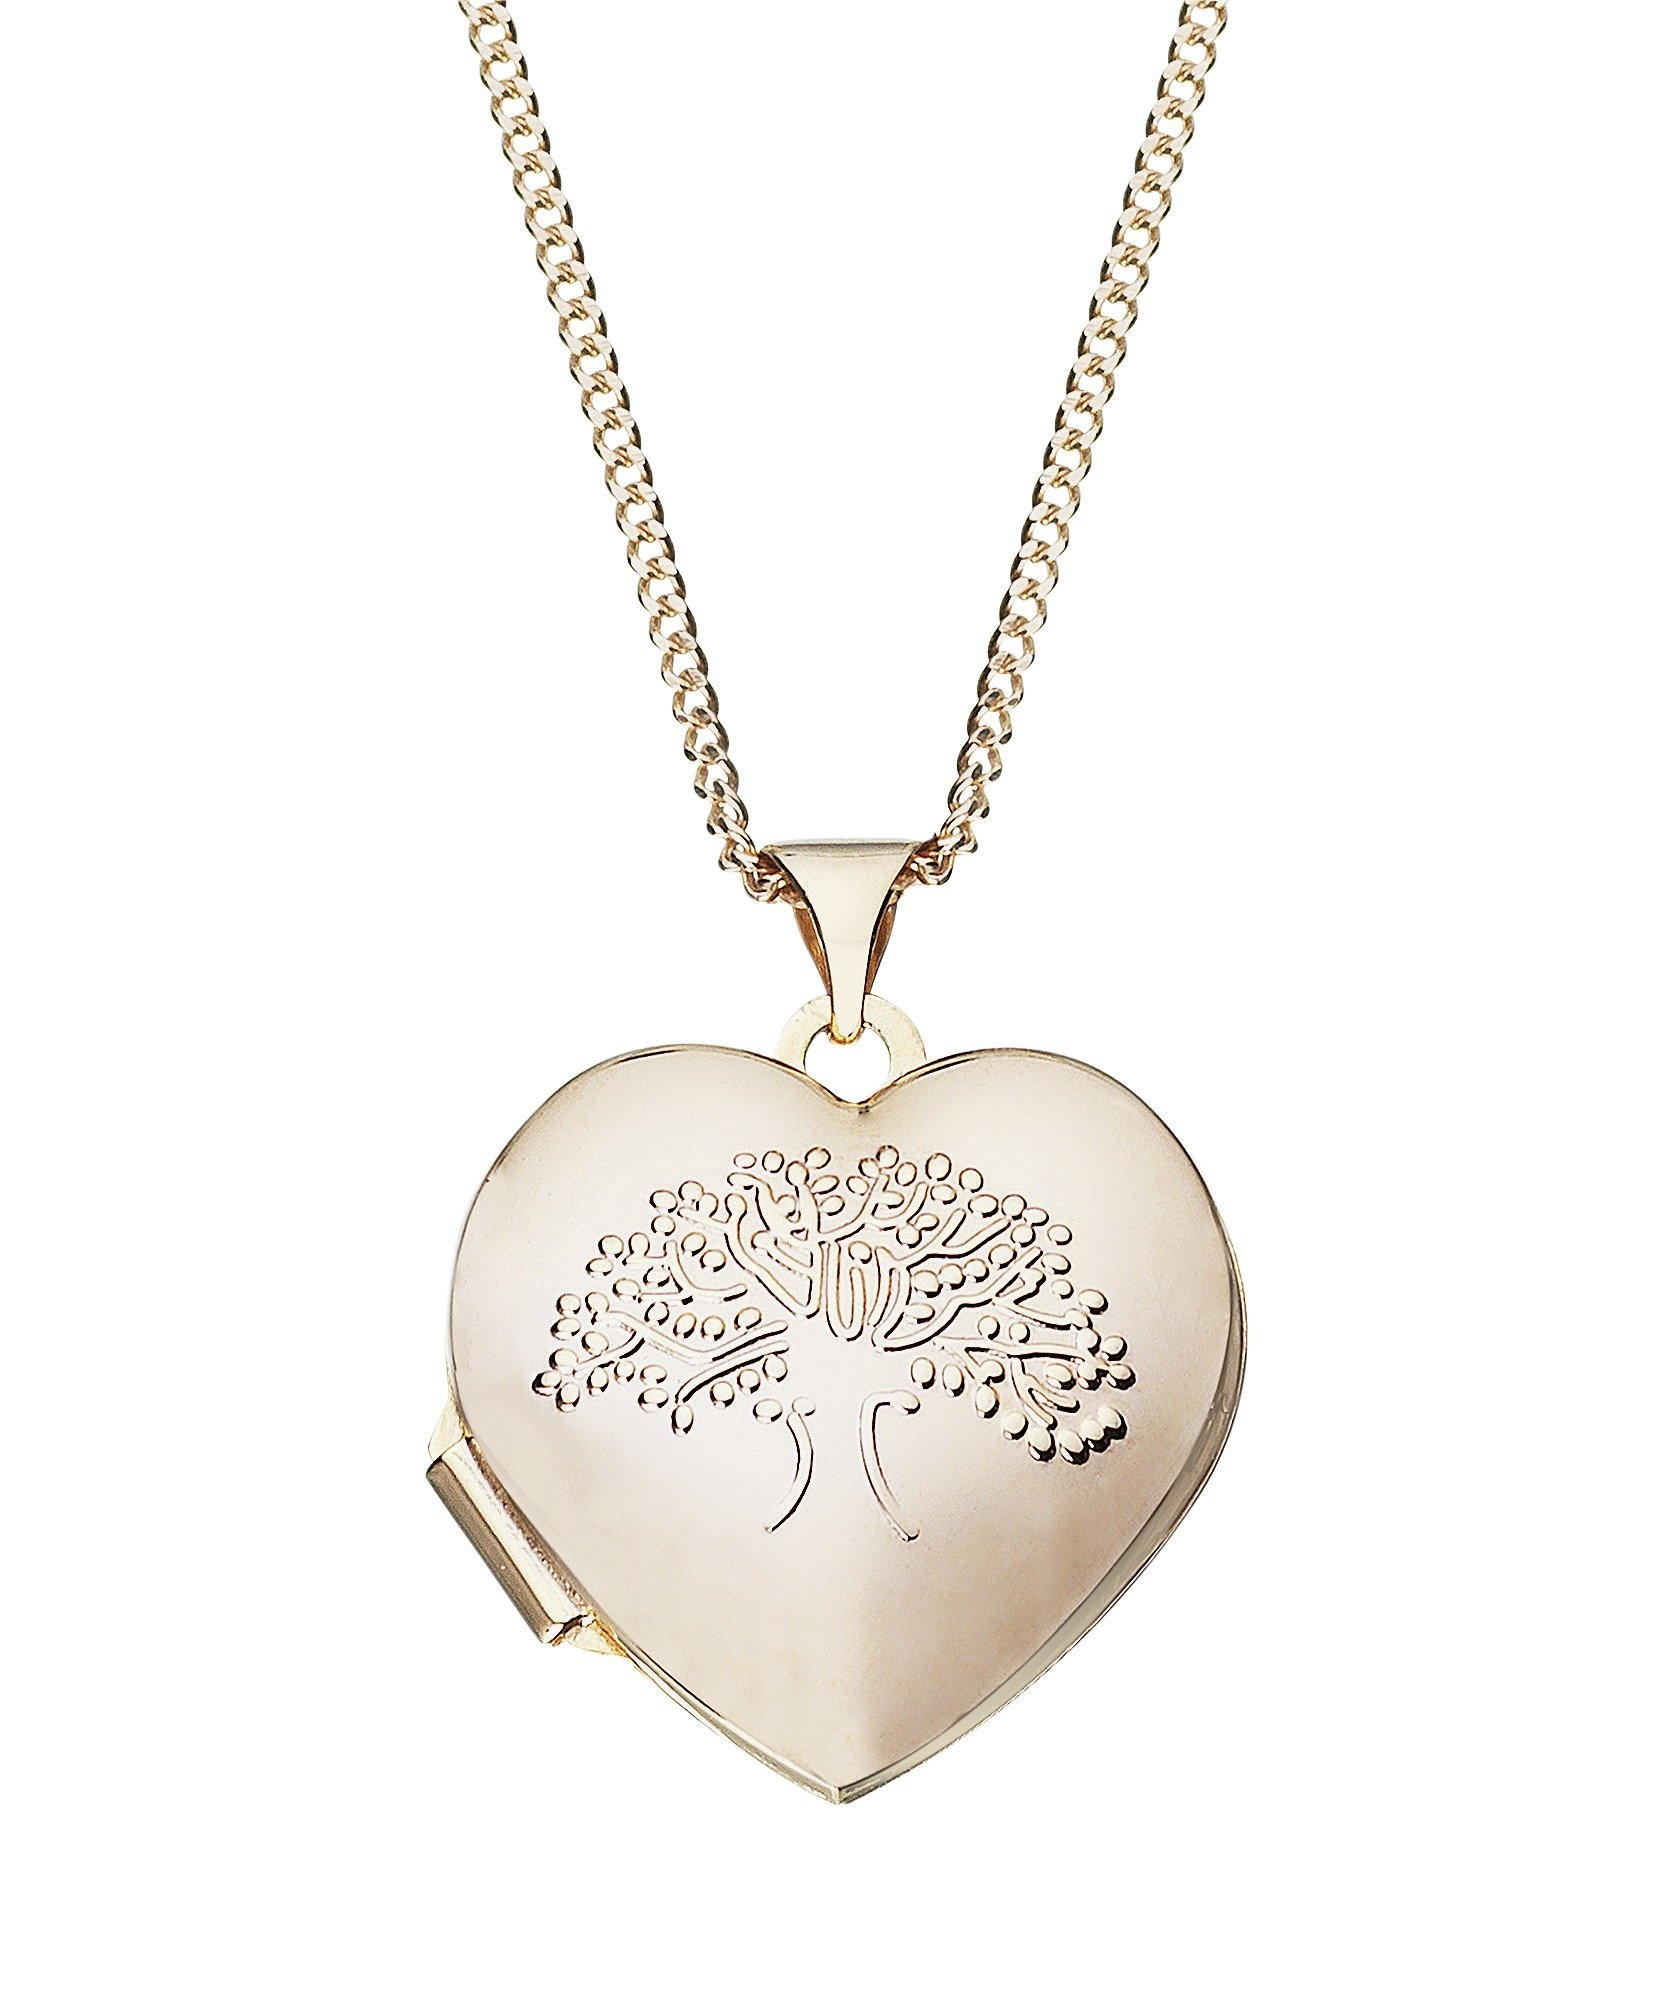 Image of Moon & Back 9ct Gold Plated Silver Family Tree Locket